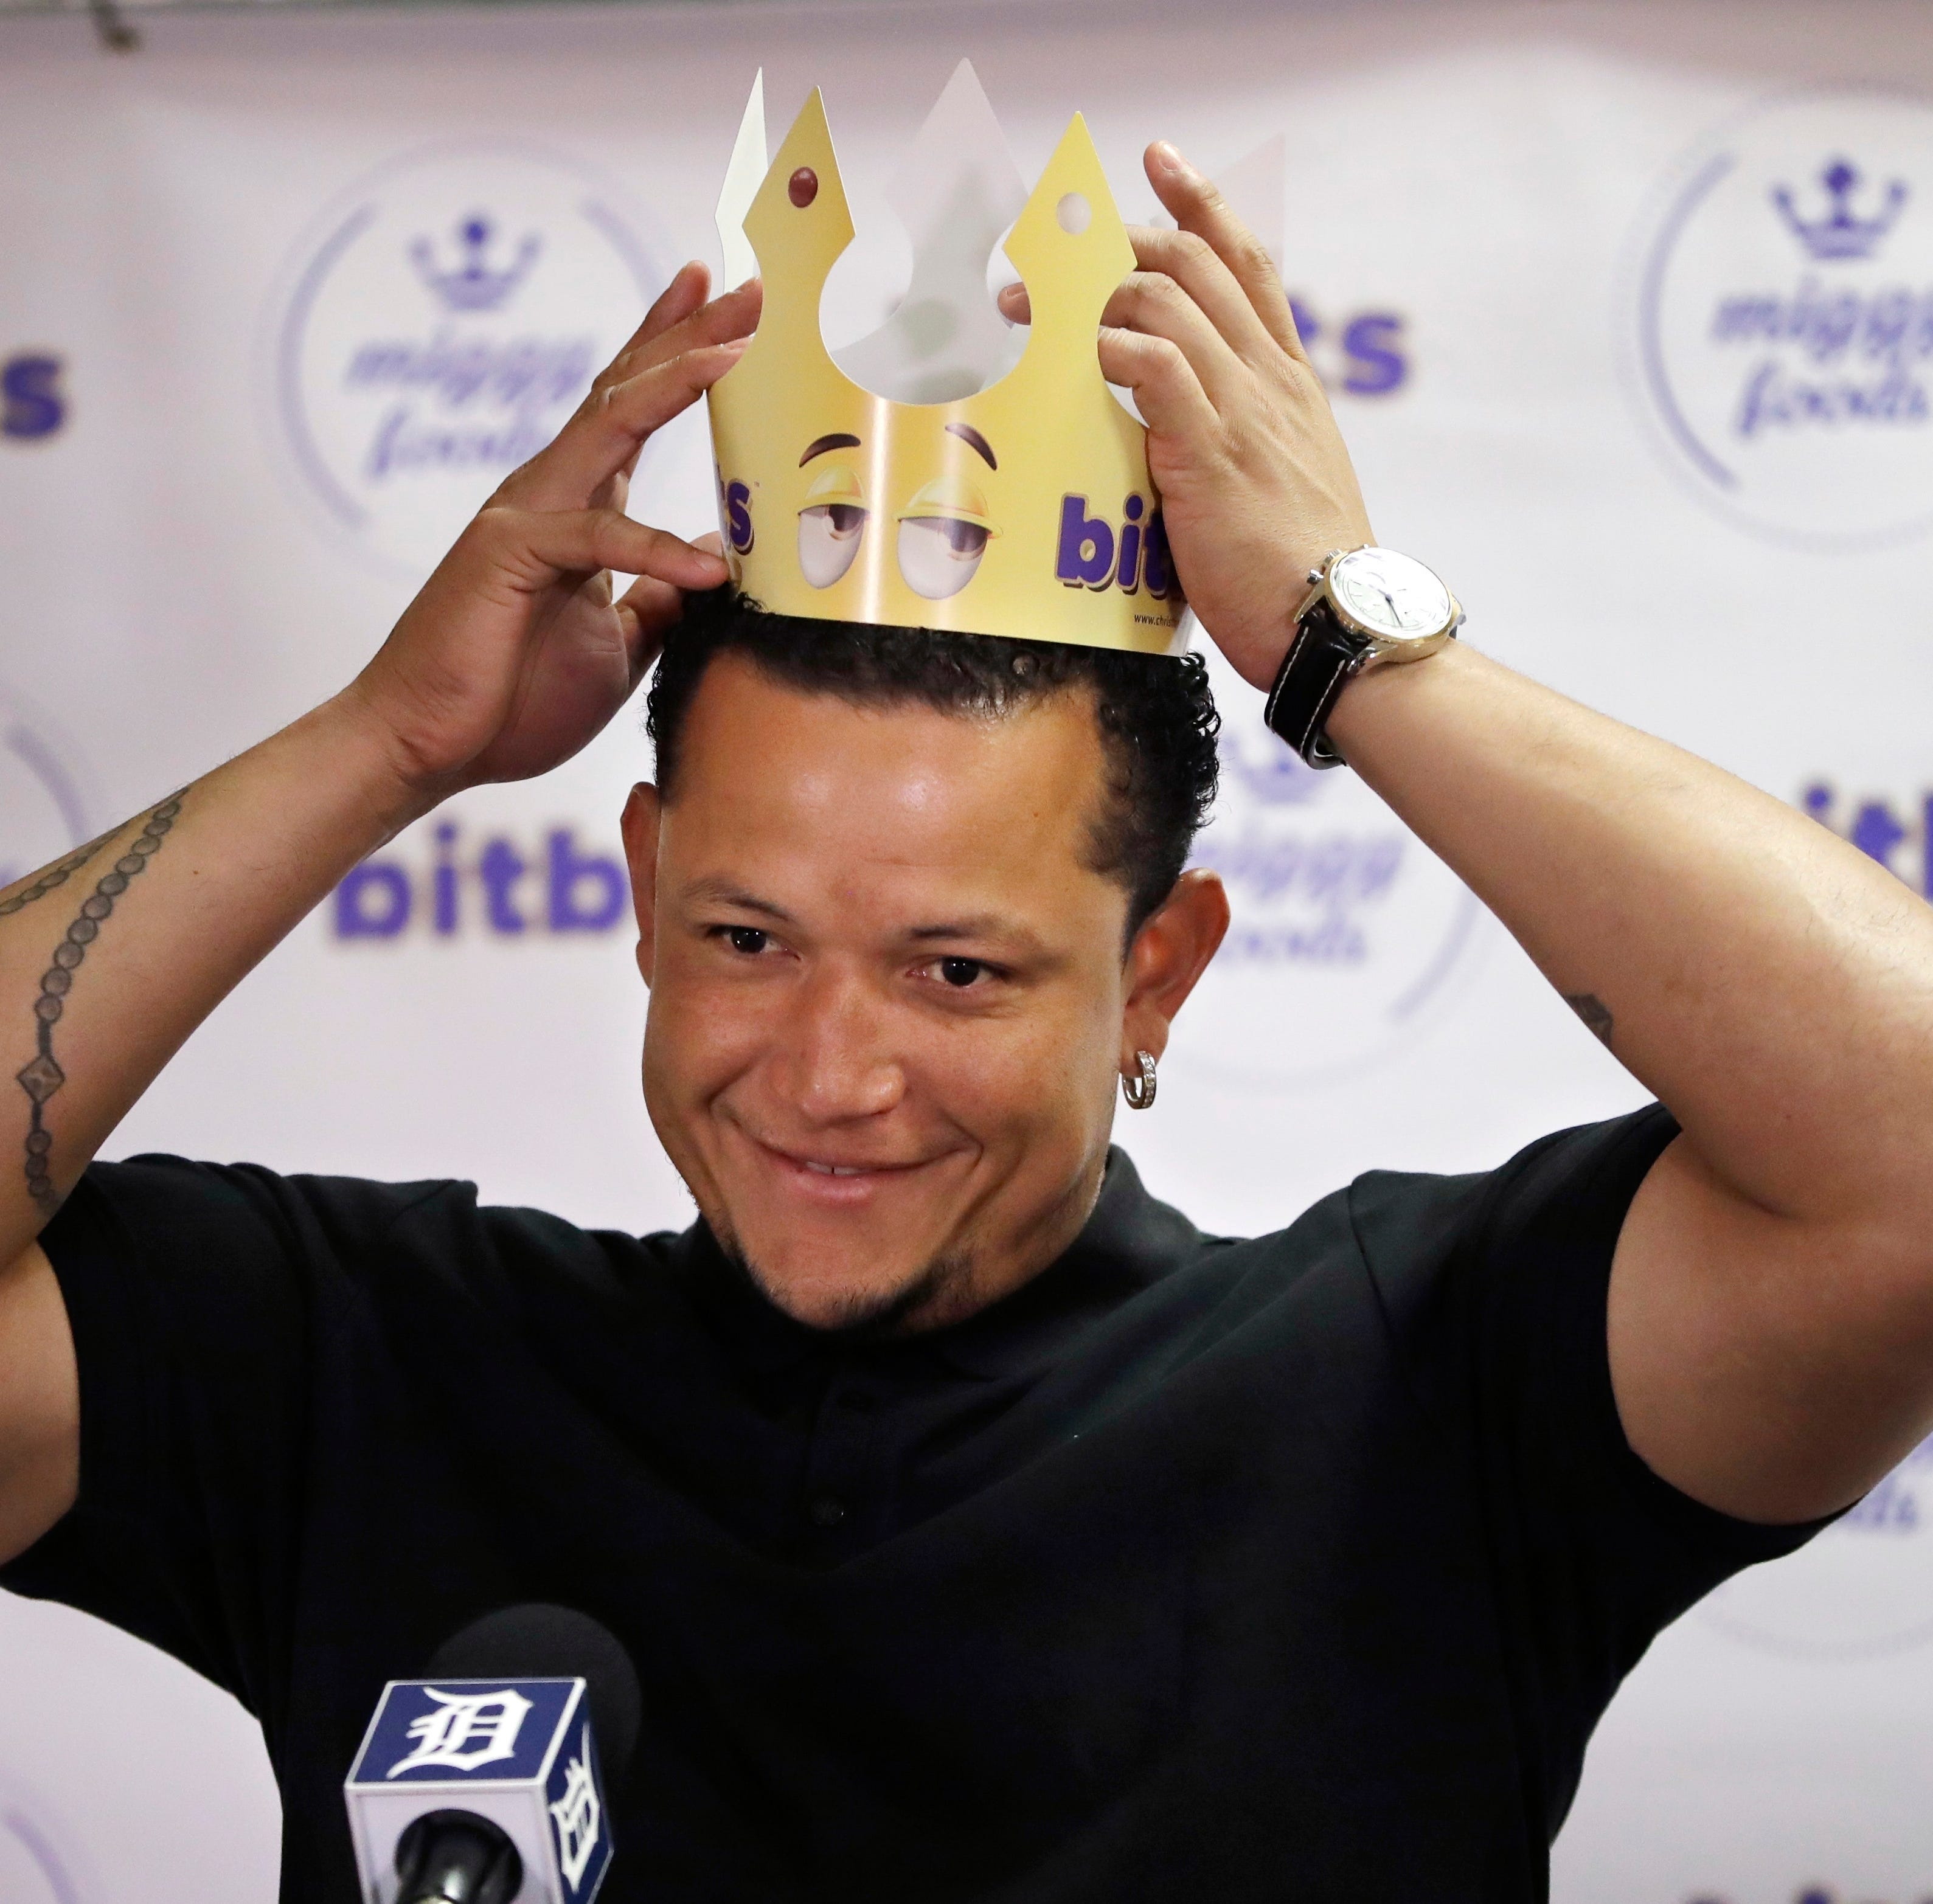 Candy crushed: Miguel Cabrera's business crumbles amid financial woes